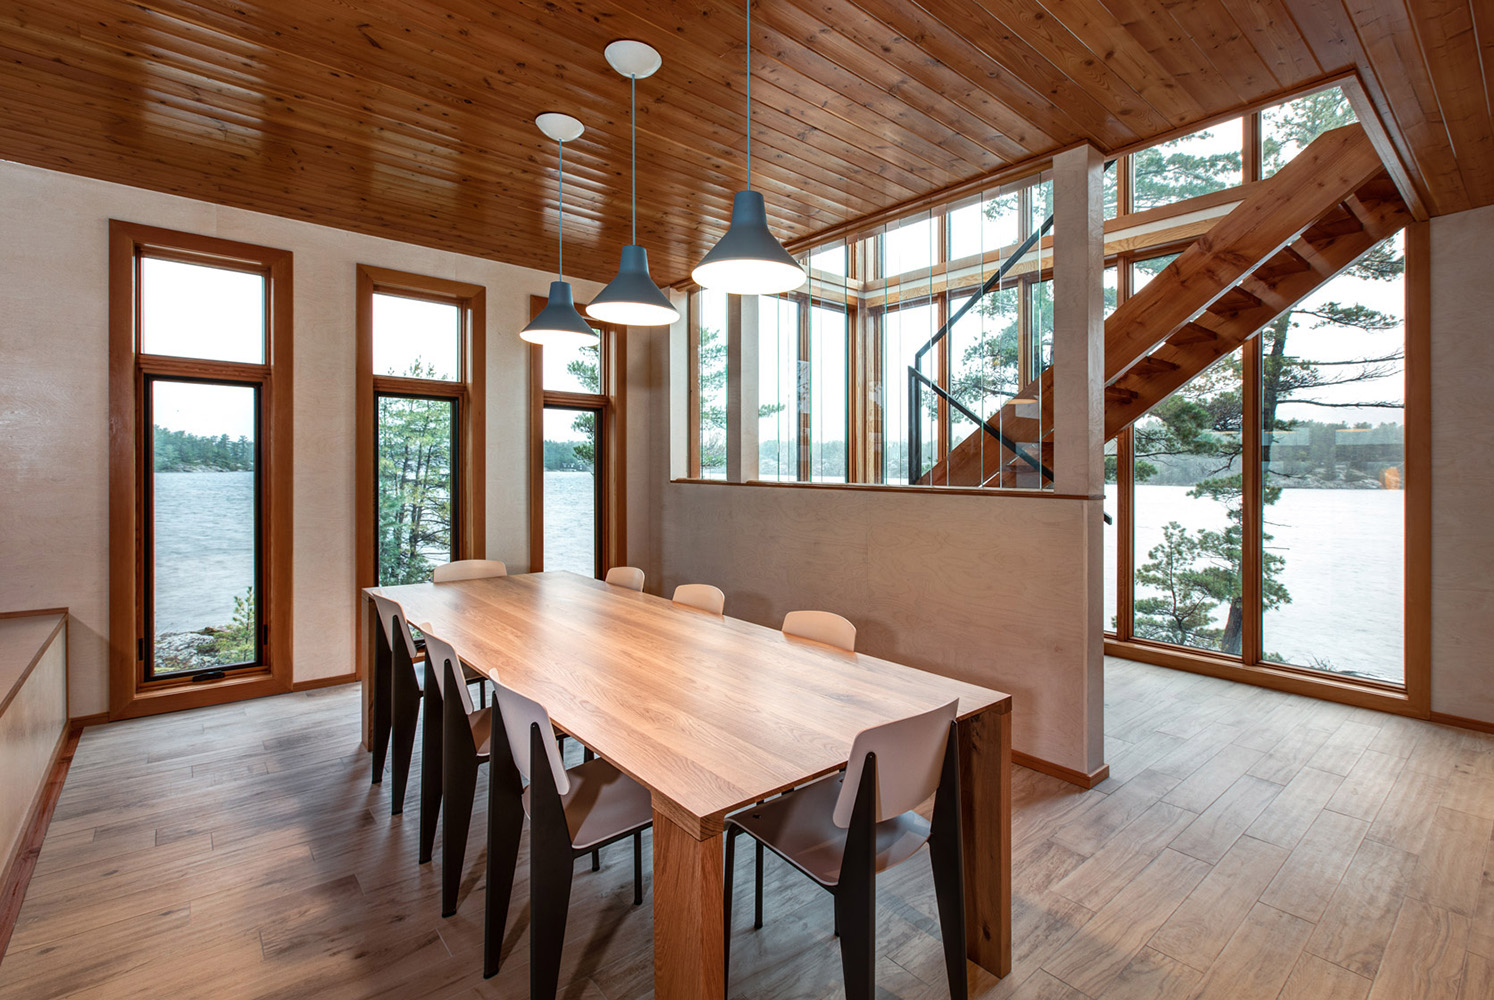 Modern cottage dining room with modern harvest dining table and hanging pendant lighting